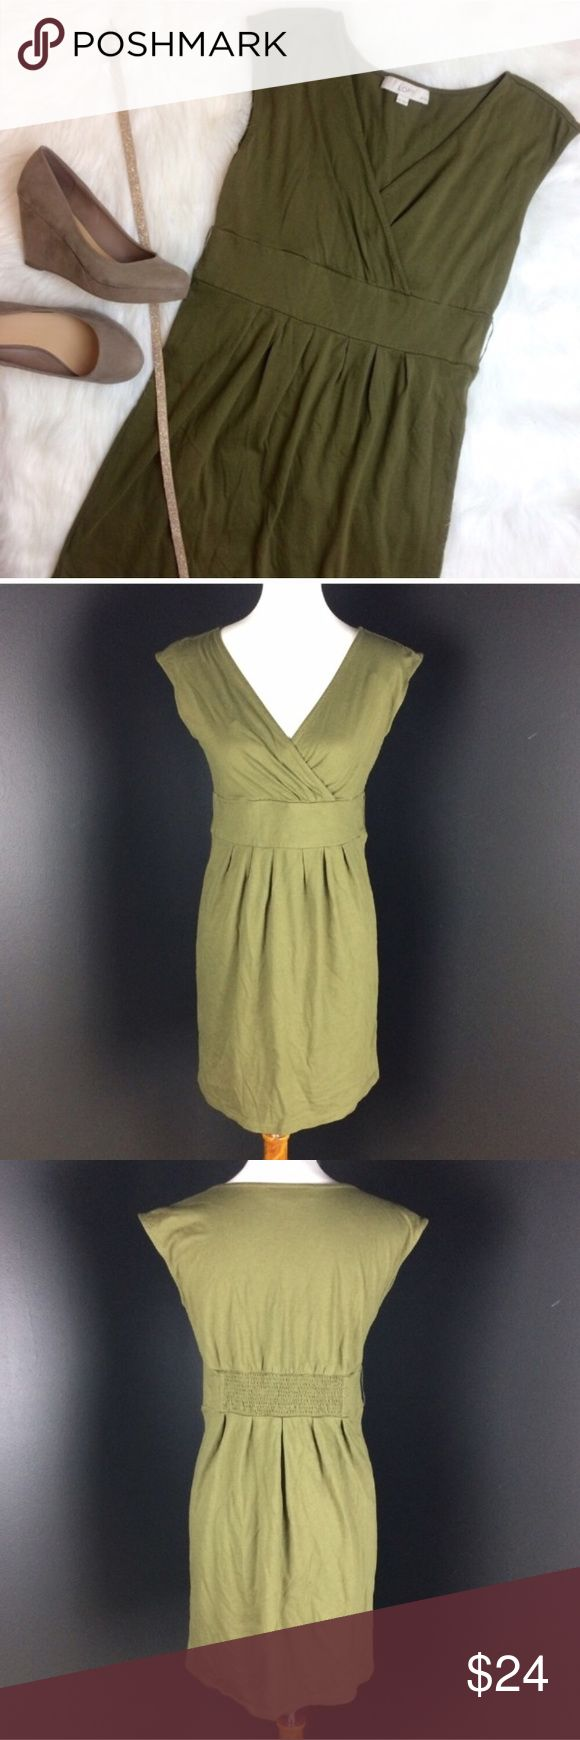 "LOFT Olive Green Dress Perfect olive green dress from the Loft. Has crossover style v-neck. Has loops for a belt or can be worn without a belt. Excellent condition. Size Medium Petite. Armpit to armpit is 17 3/4"", waist is 15"", length is 32.5"". LOFT Dresses"